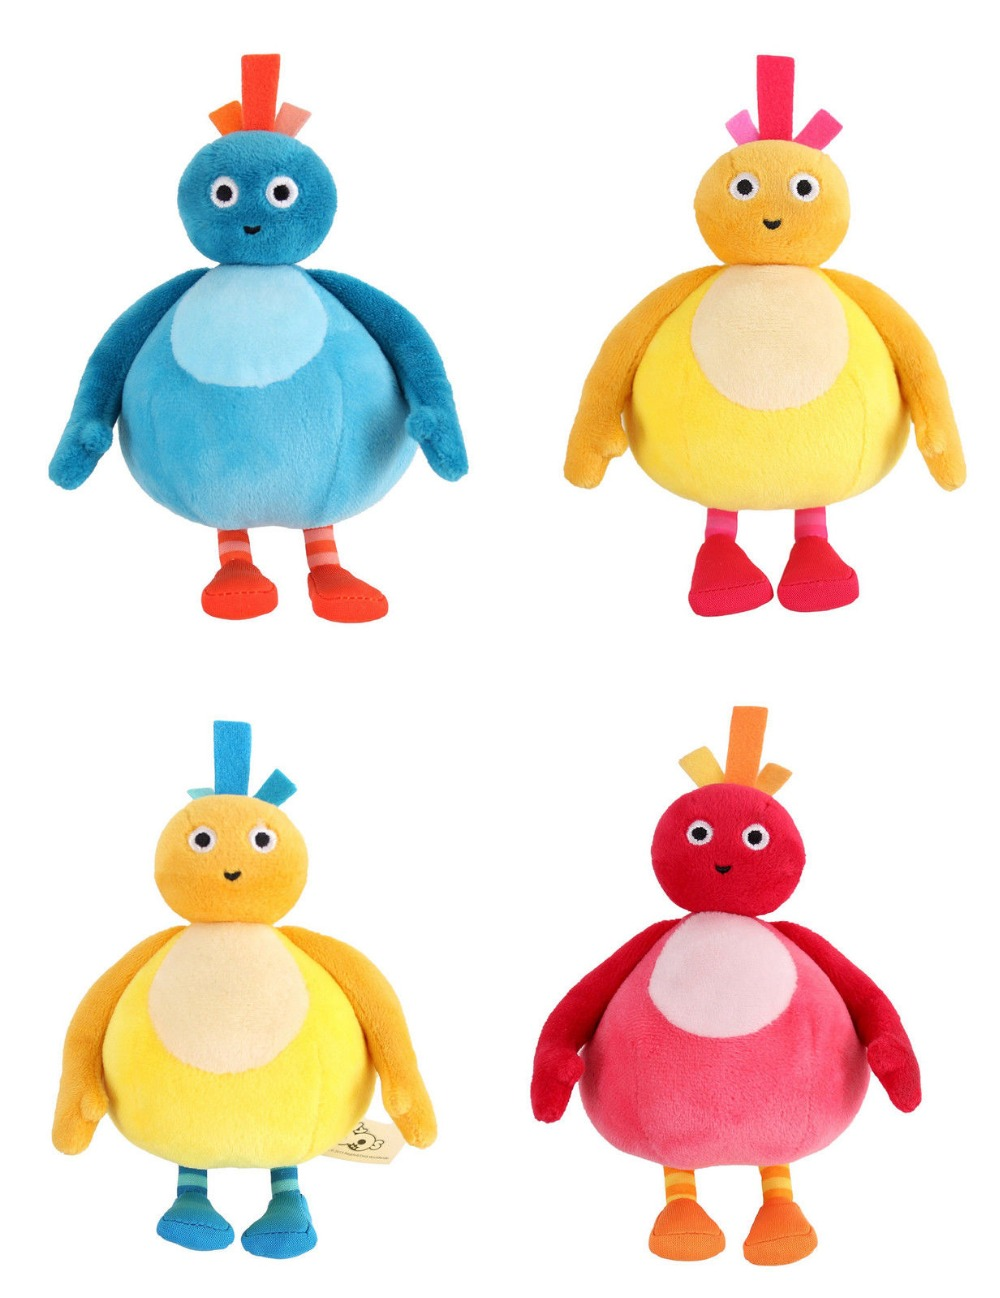 New Twirlywoos Plush Soft Toy Chick Toodloo Great Big Hoo Chickedy Peekaboo Set of 5 stuffed toy